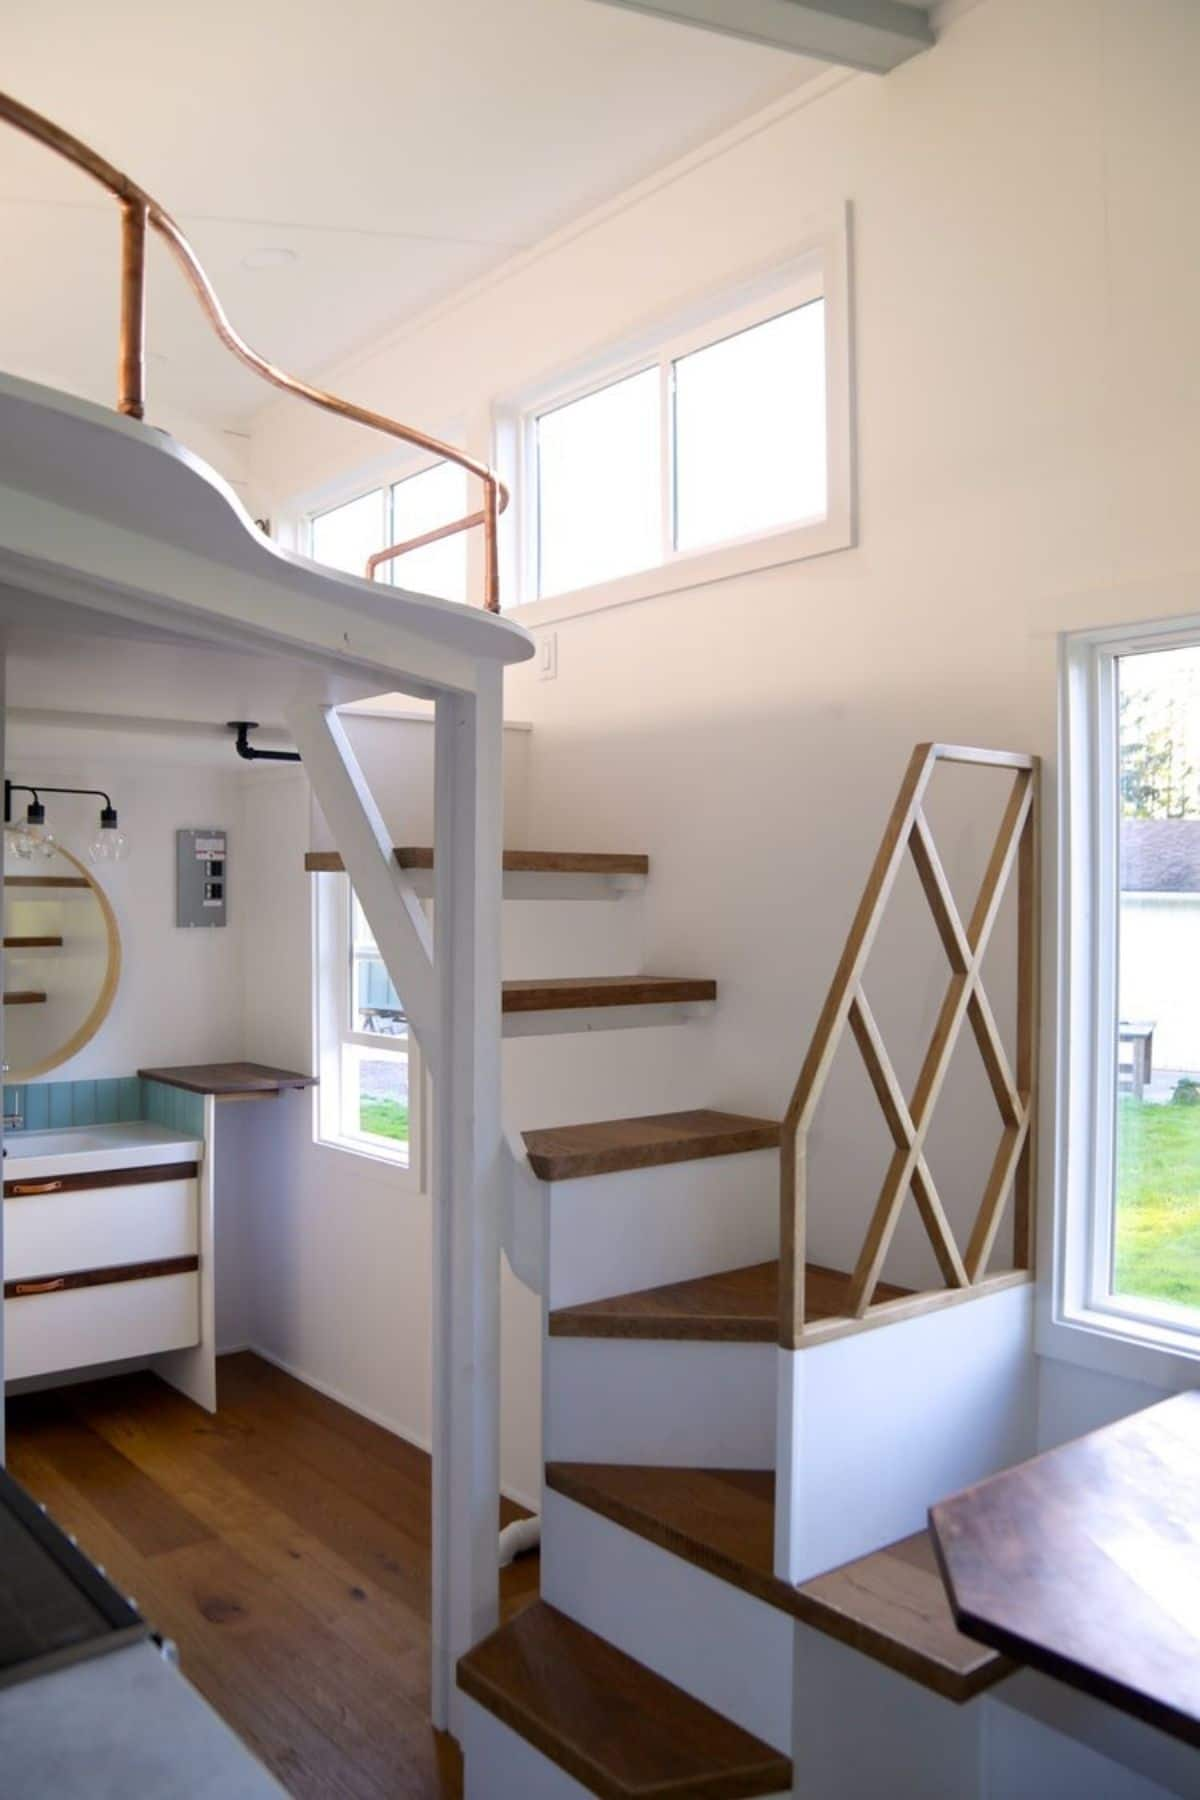 stairs to loft on right of image with vanity behind stairs